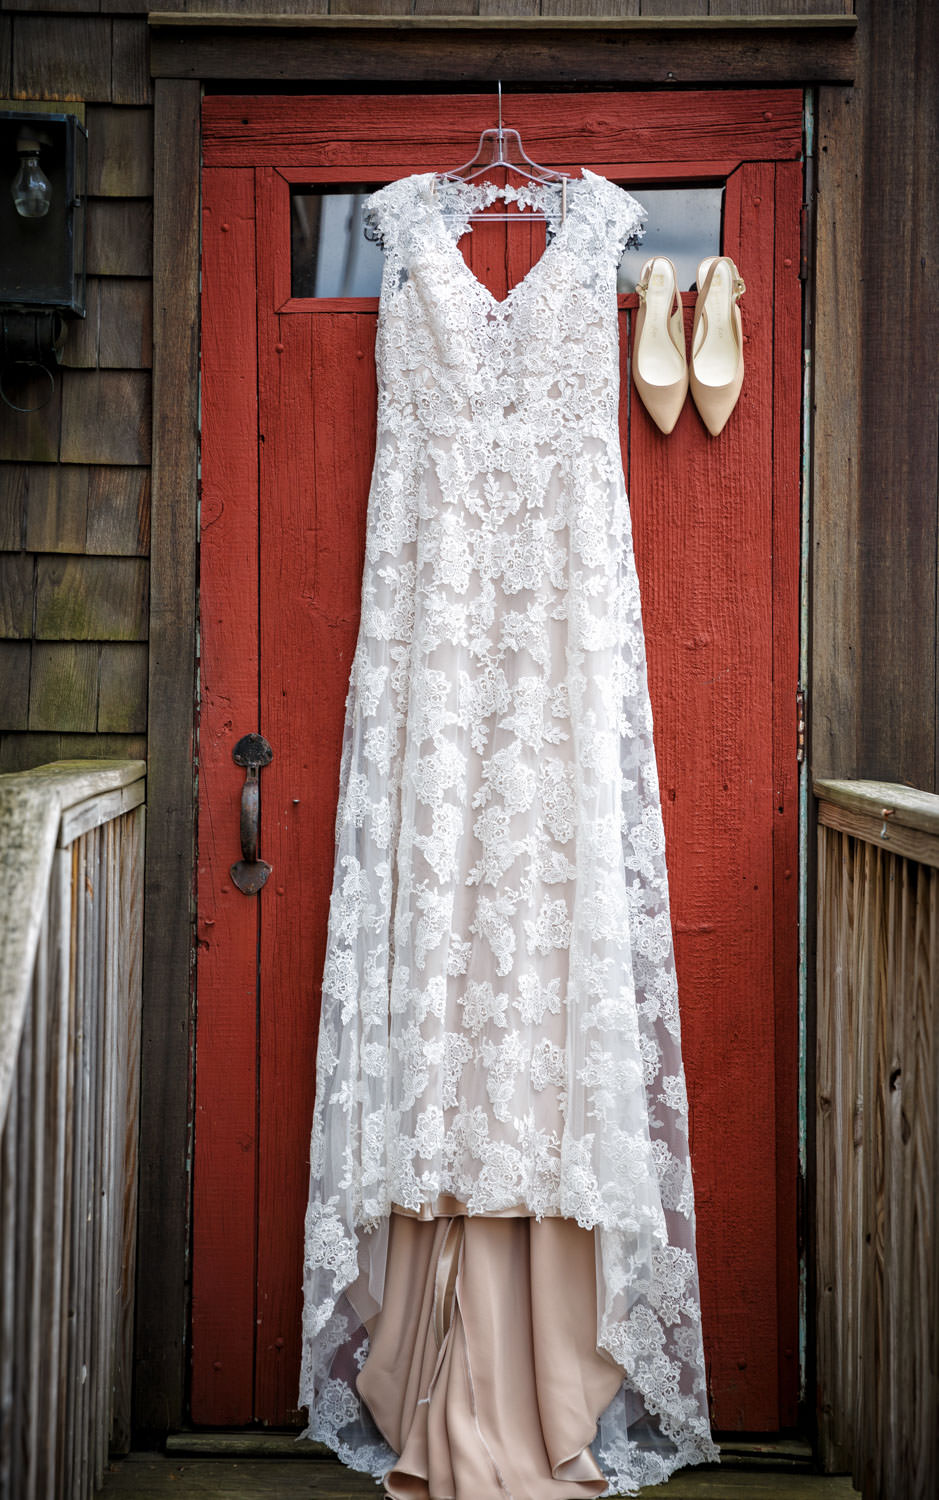 Brides wedding shoes and dress hanging outside on the red barn door at the Salem Cross Inn. This photo works well with the red of the door contrasting the brides off white dress.